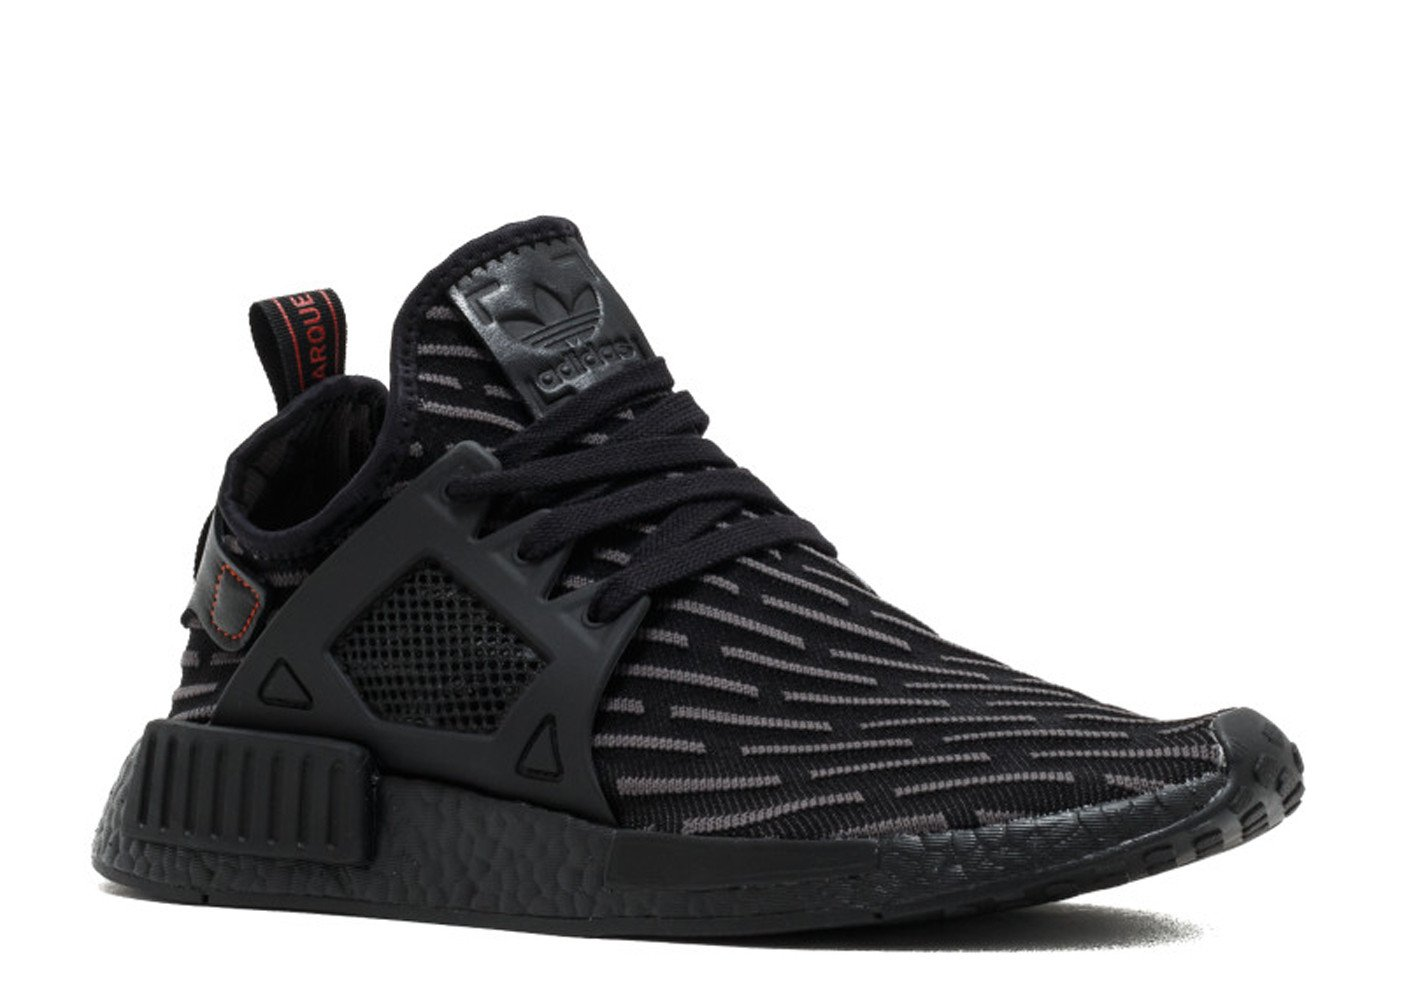 Adidas NMD Duck Camo XR1 BA7233 Footwear White Core Black